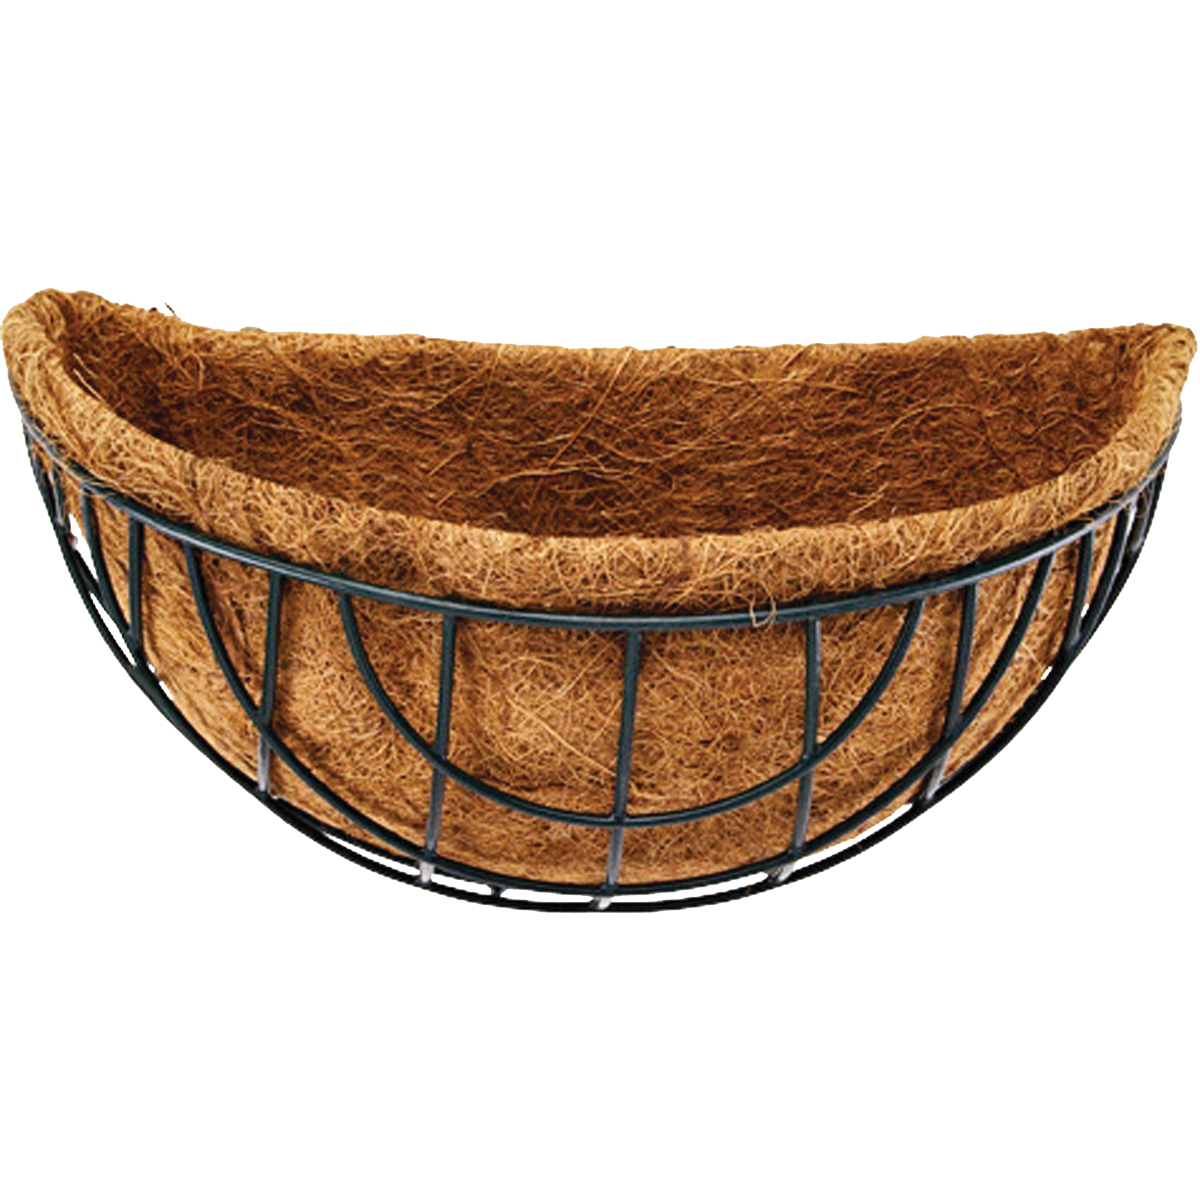 Picture of Landscapers Select GB-4315-3L Wall Basket with Natural Coconut Liner, Half-Circle, 22 lb Capacity, Matte Black